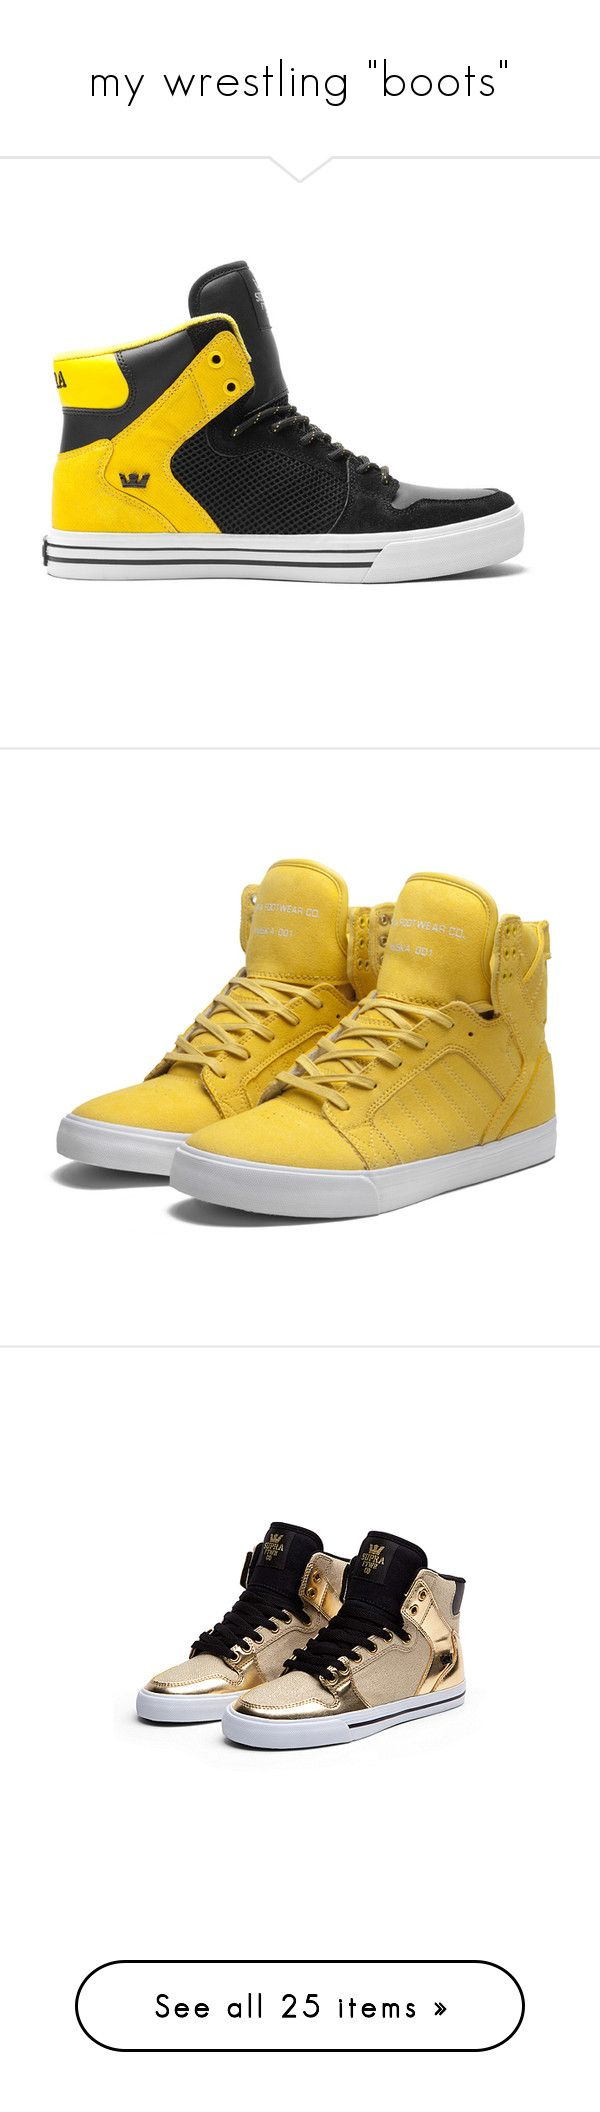 """""""my wrestling """"boots"""""""" by h3adphonez ❤ liked on Polyvore featuring shoes, sneakers, supra, mesh sneakers, mesh material shoes, high top shoes, supra sneakers, high-top sneakers, adidas and hi-tops"""